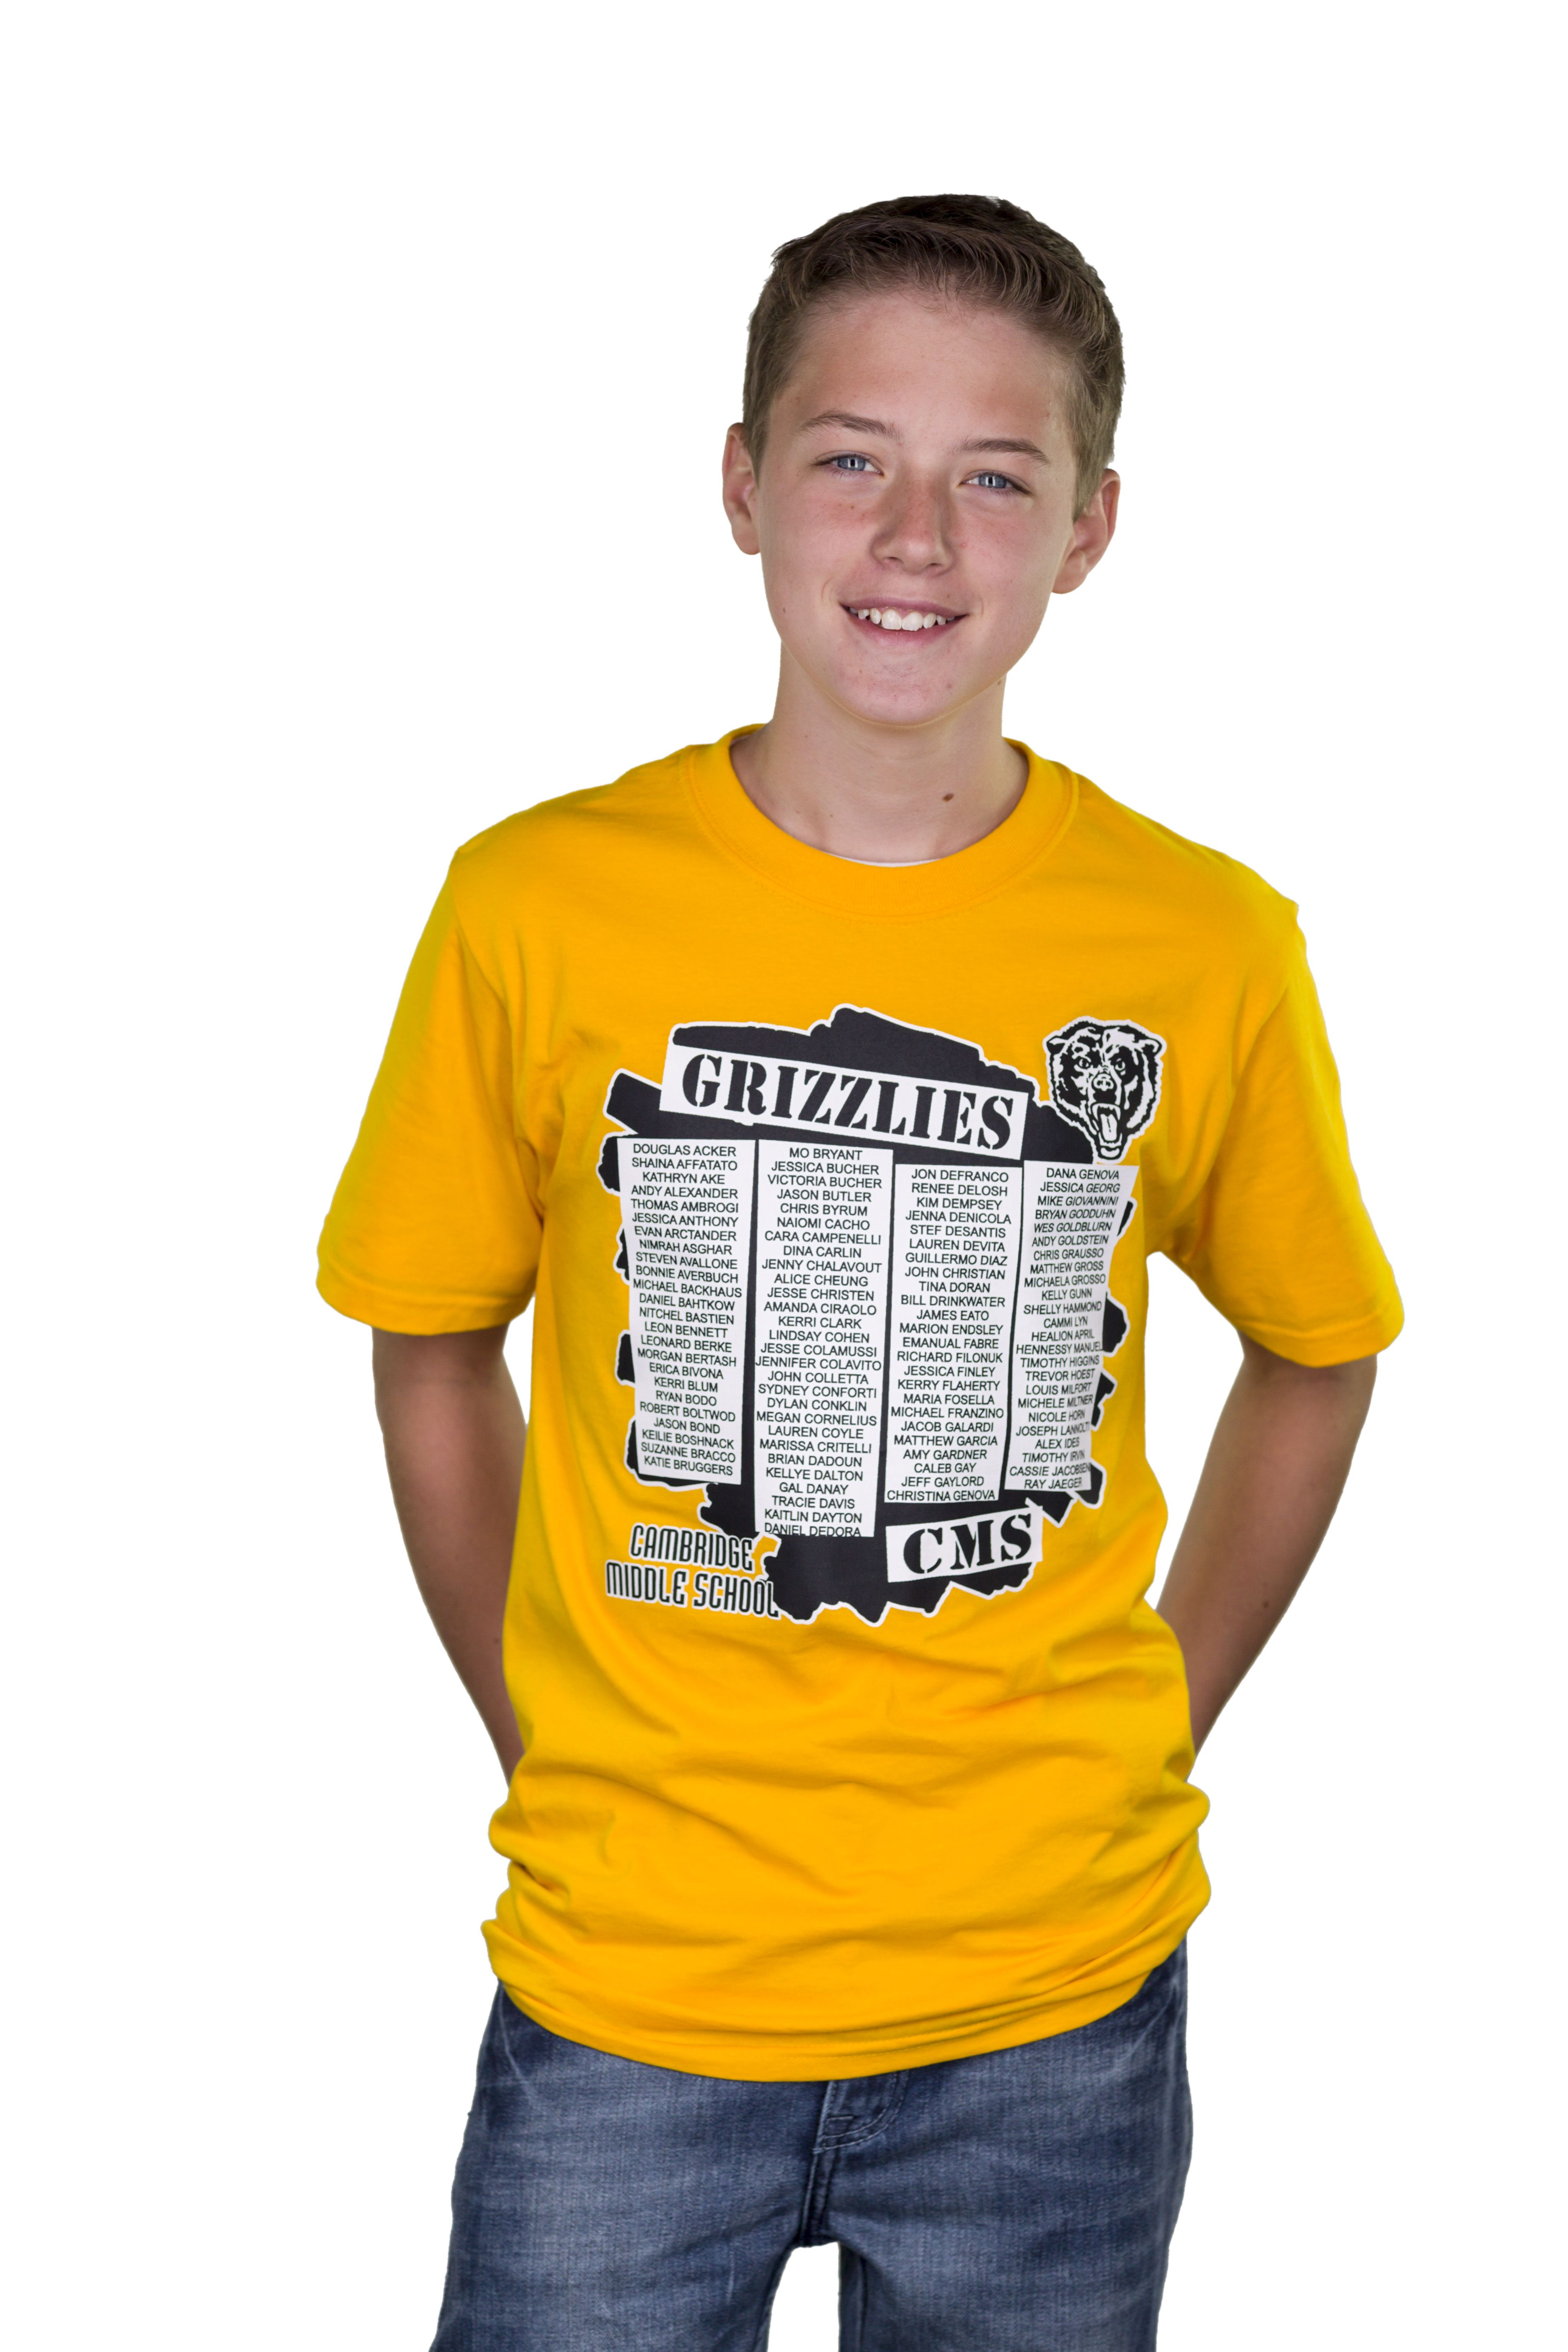 School shirt design your own -  Middleschool Class List T Shirt Design With Mascot Switch Grizzly For Your Own